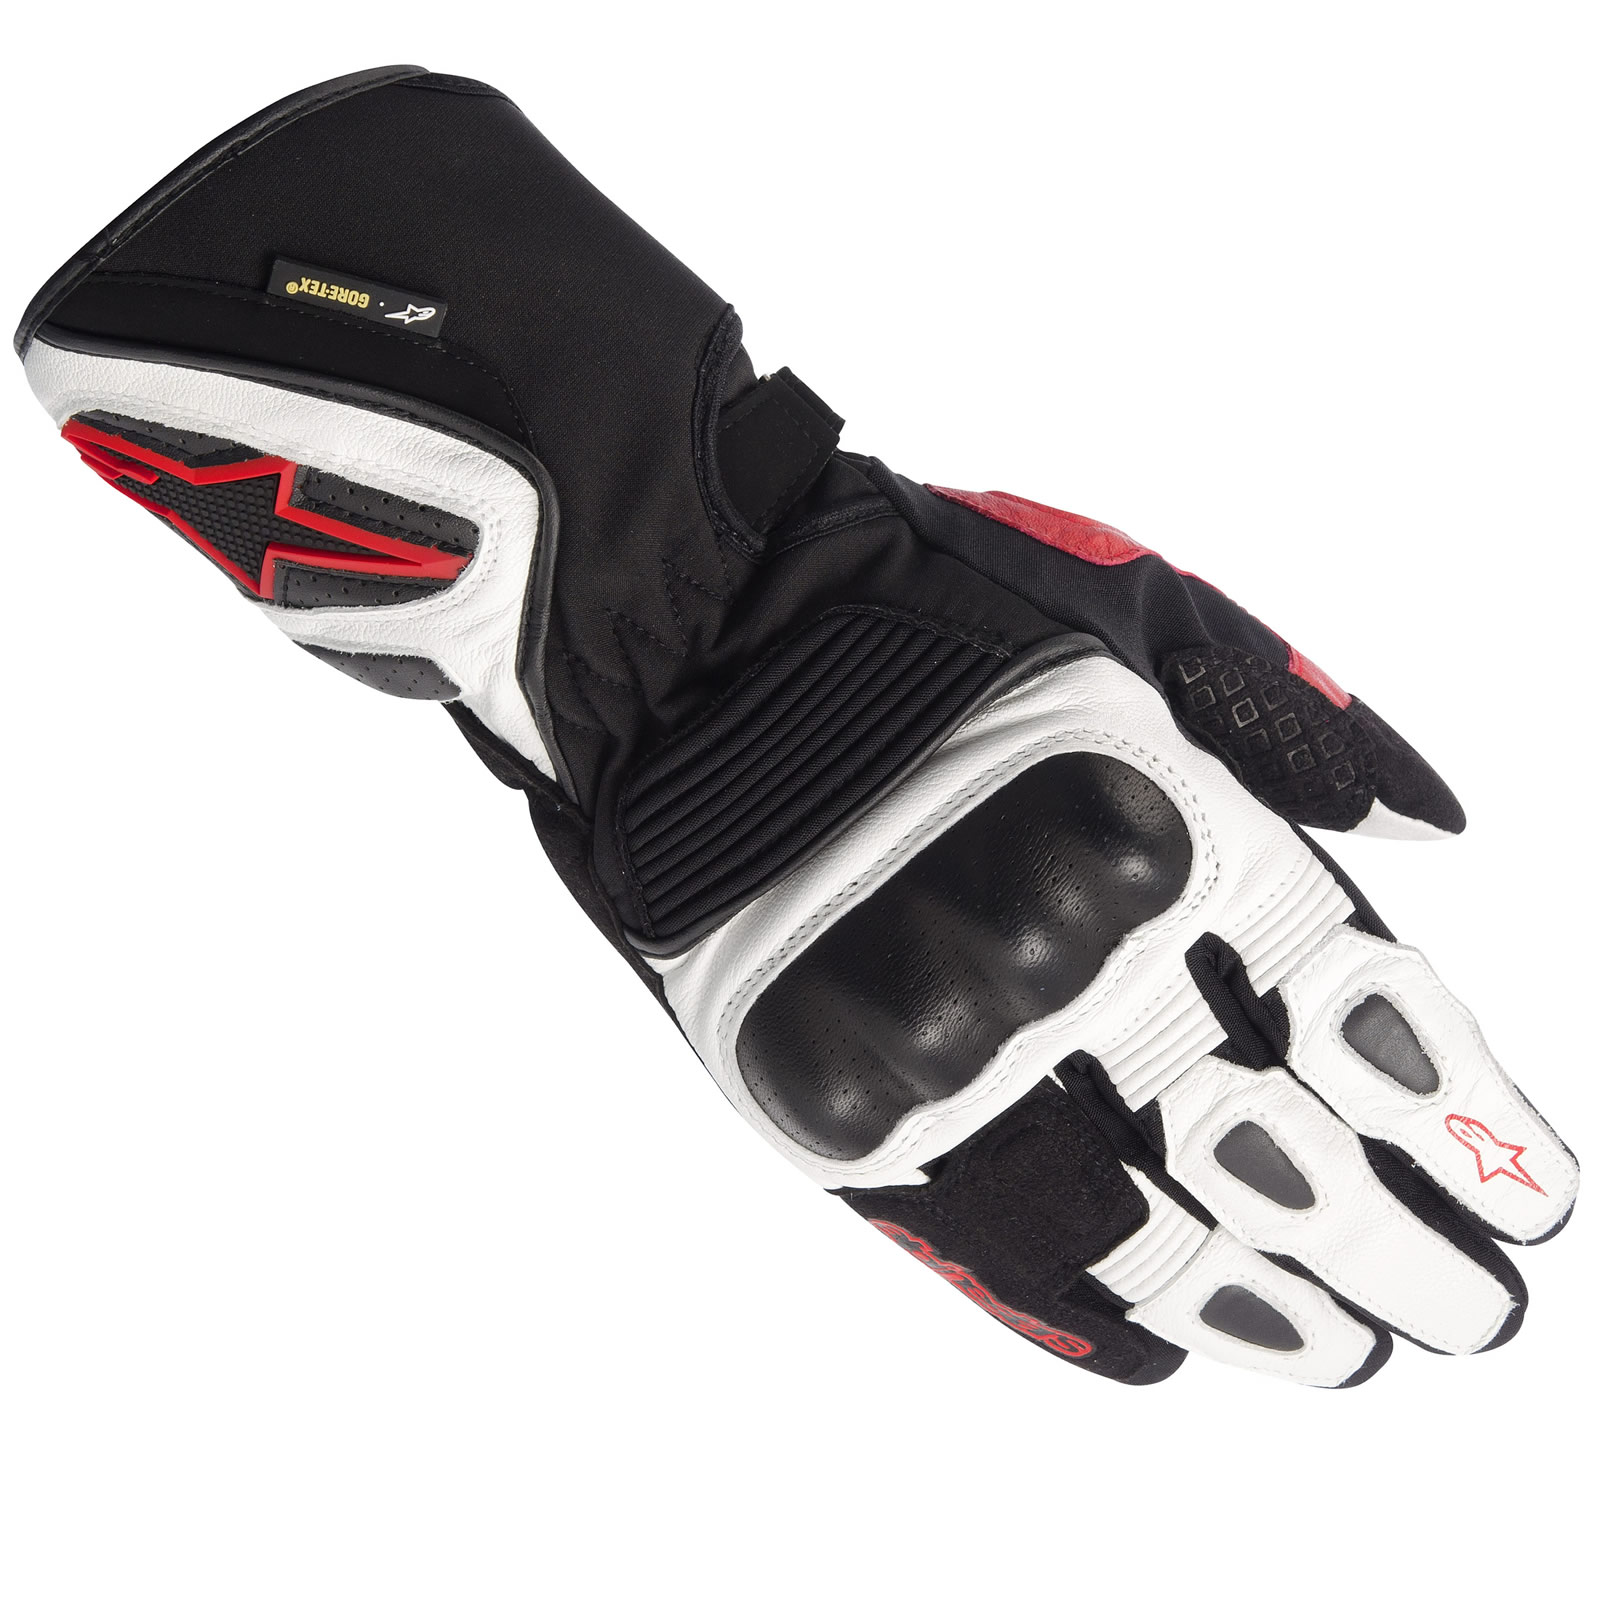 Xtrafit motorcycle gloves - Alpinestars Gts Xtrafit Motorcycle Leather Gore Tex Gtx